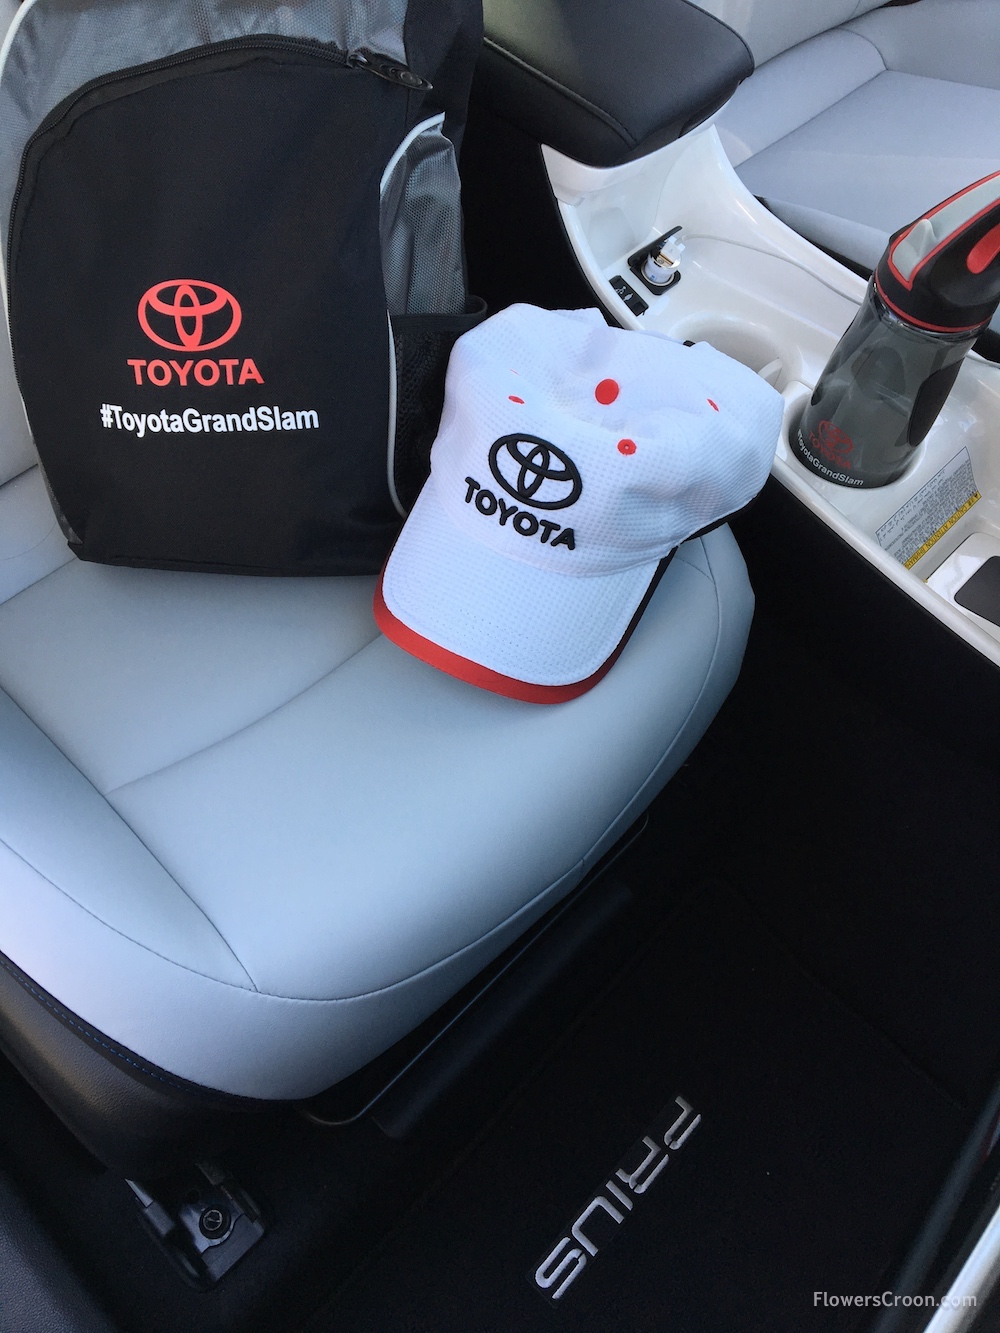 Roomy and comfortable front seats with cup holders and chargers. Ready to drive to Spring Training with my goodies from Toyota